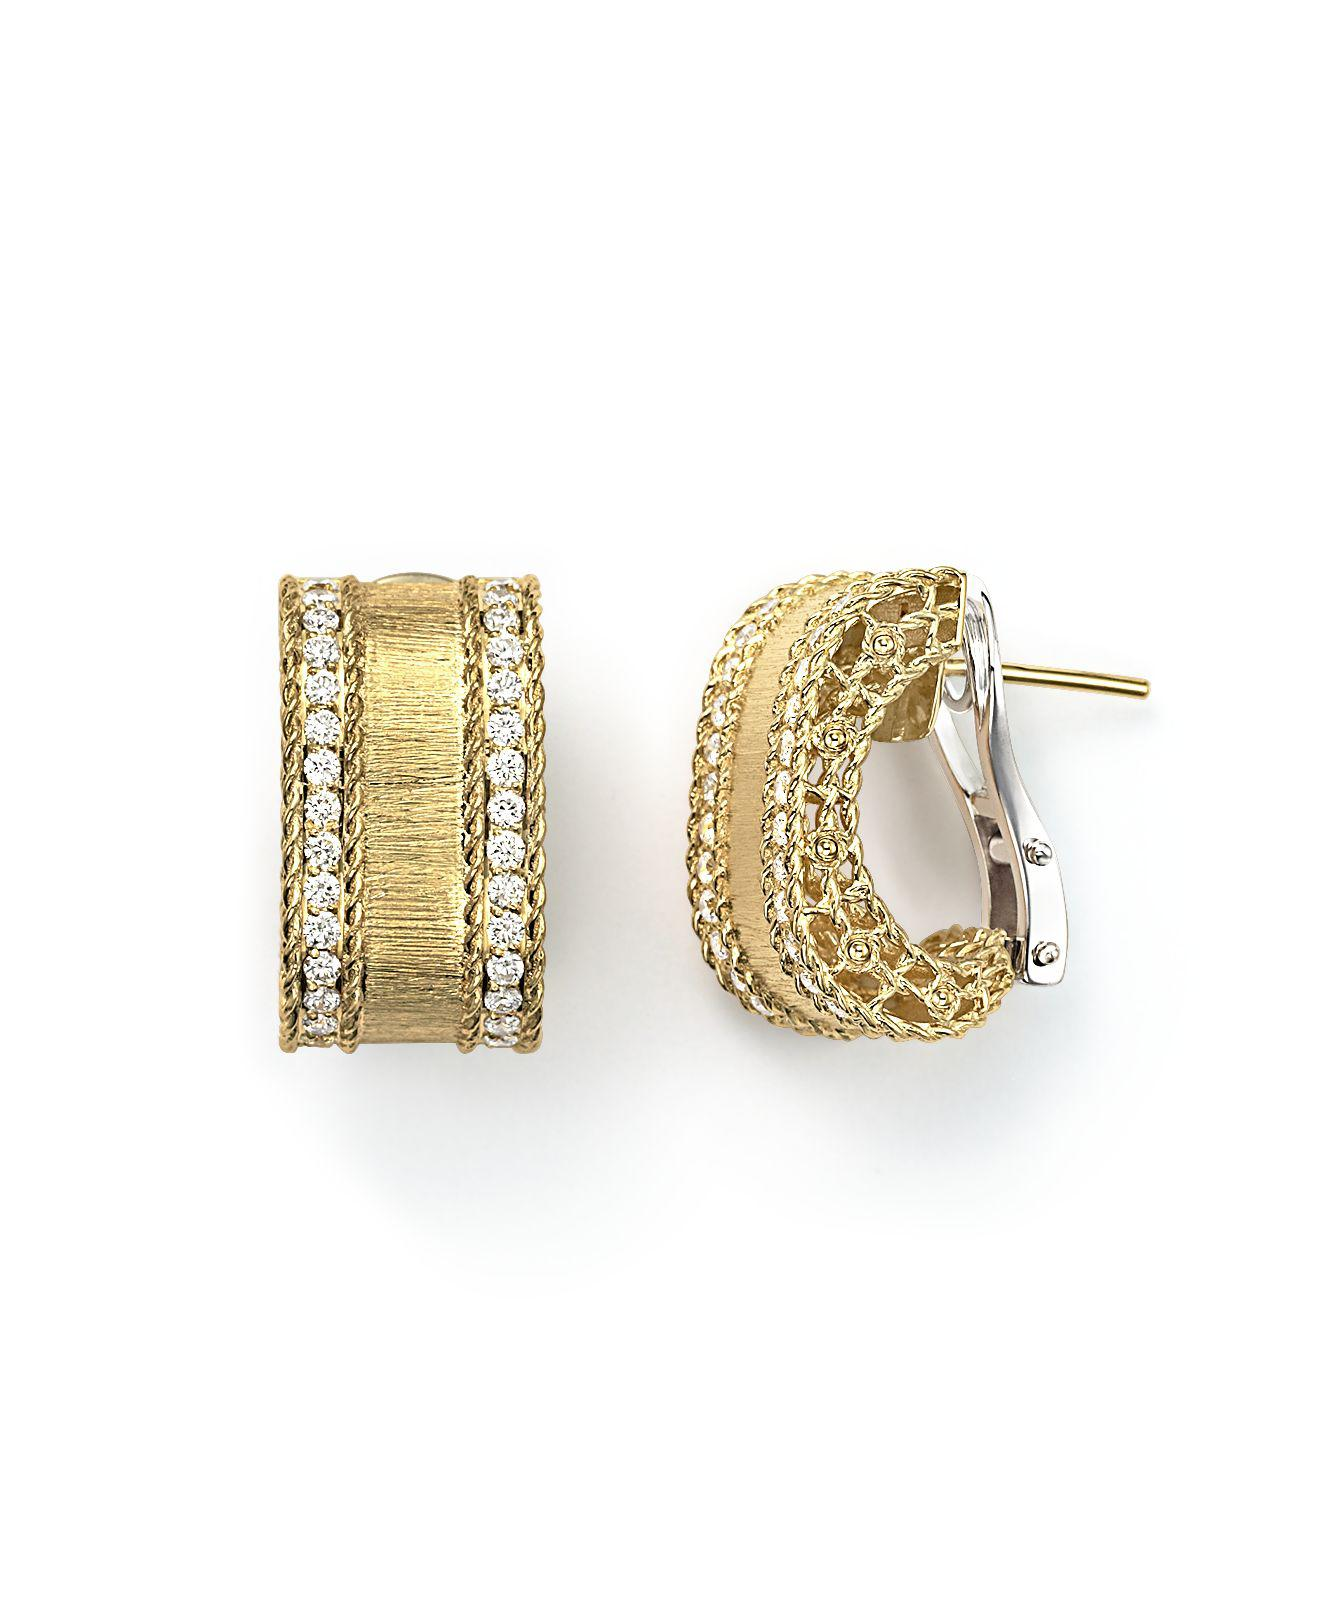 Roberto Coin Princess 18K Yellow Gold Diamond Bar Earrings JBMcJQF